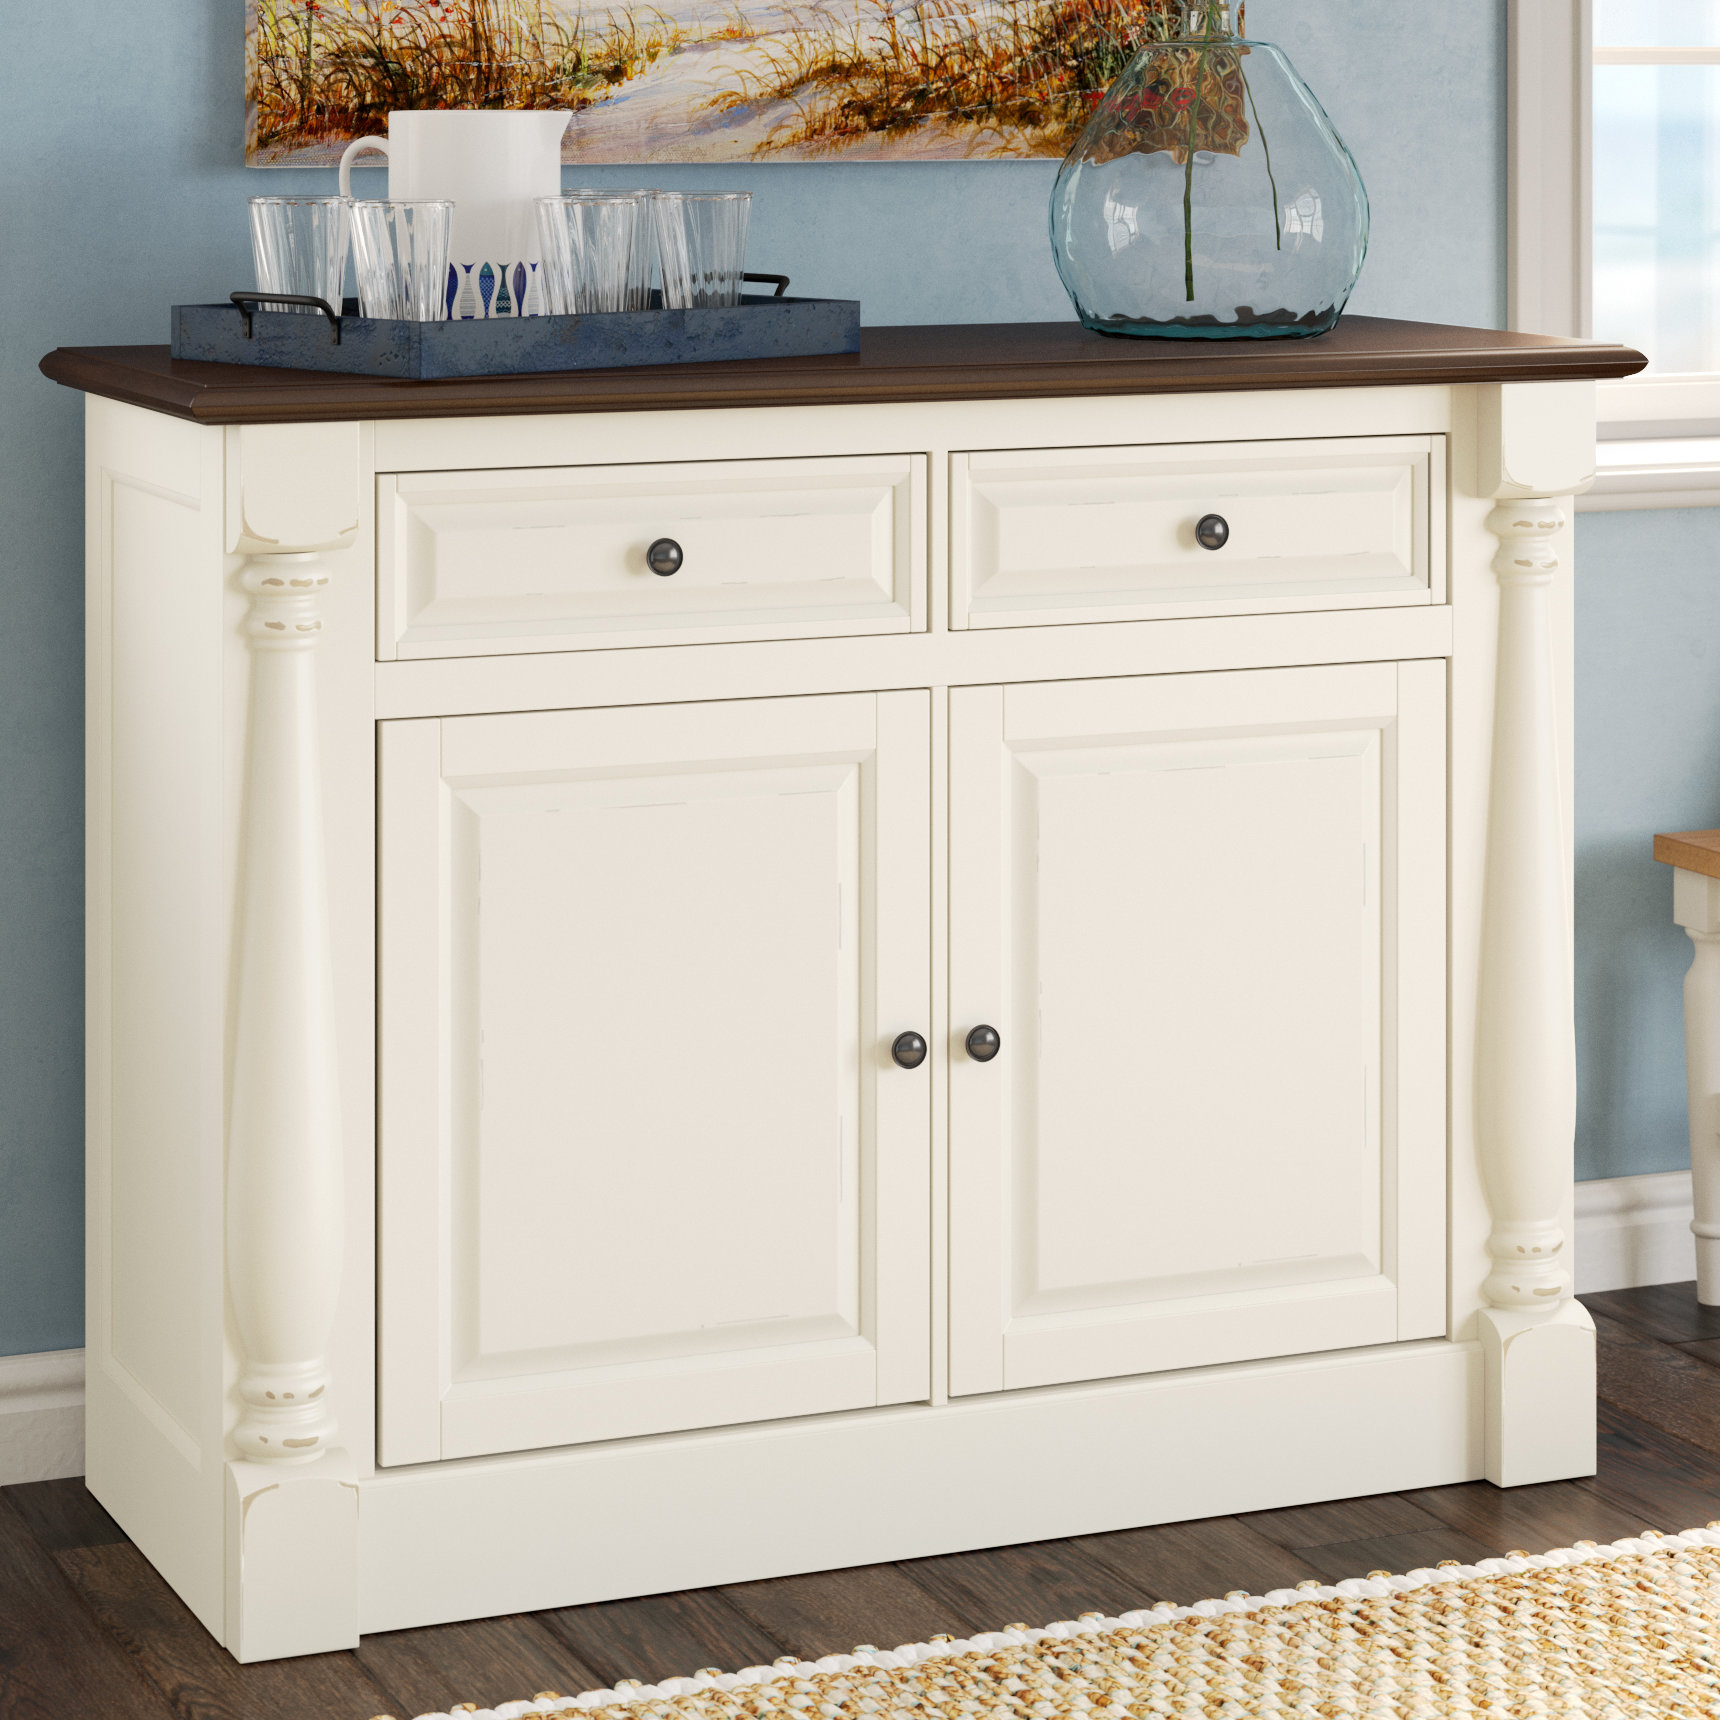 Wayfair With Regard To Cazenovia Charnley Sideboards (View 16 of 20)